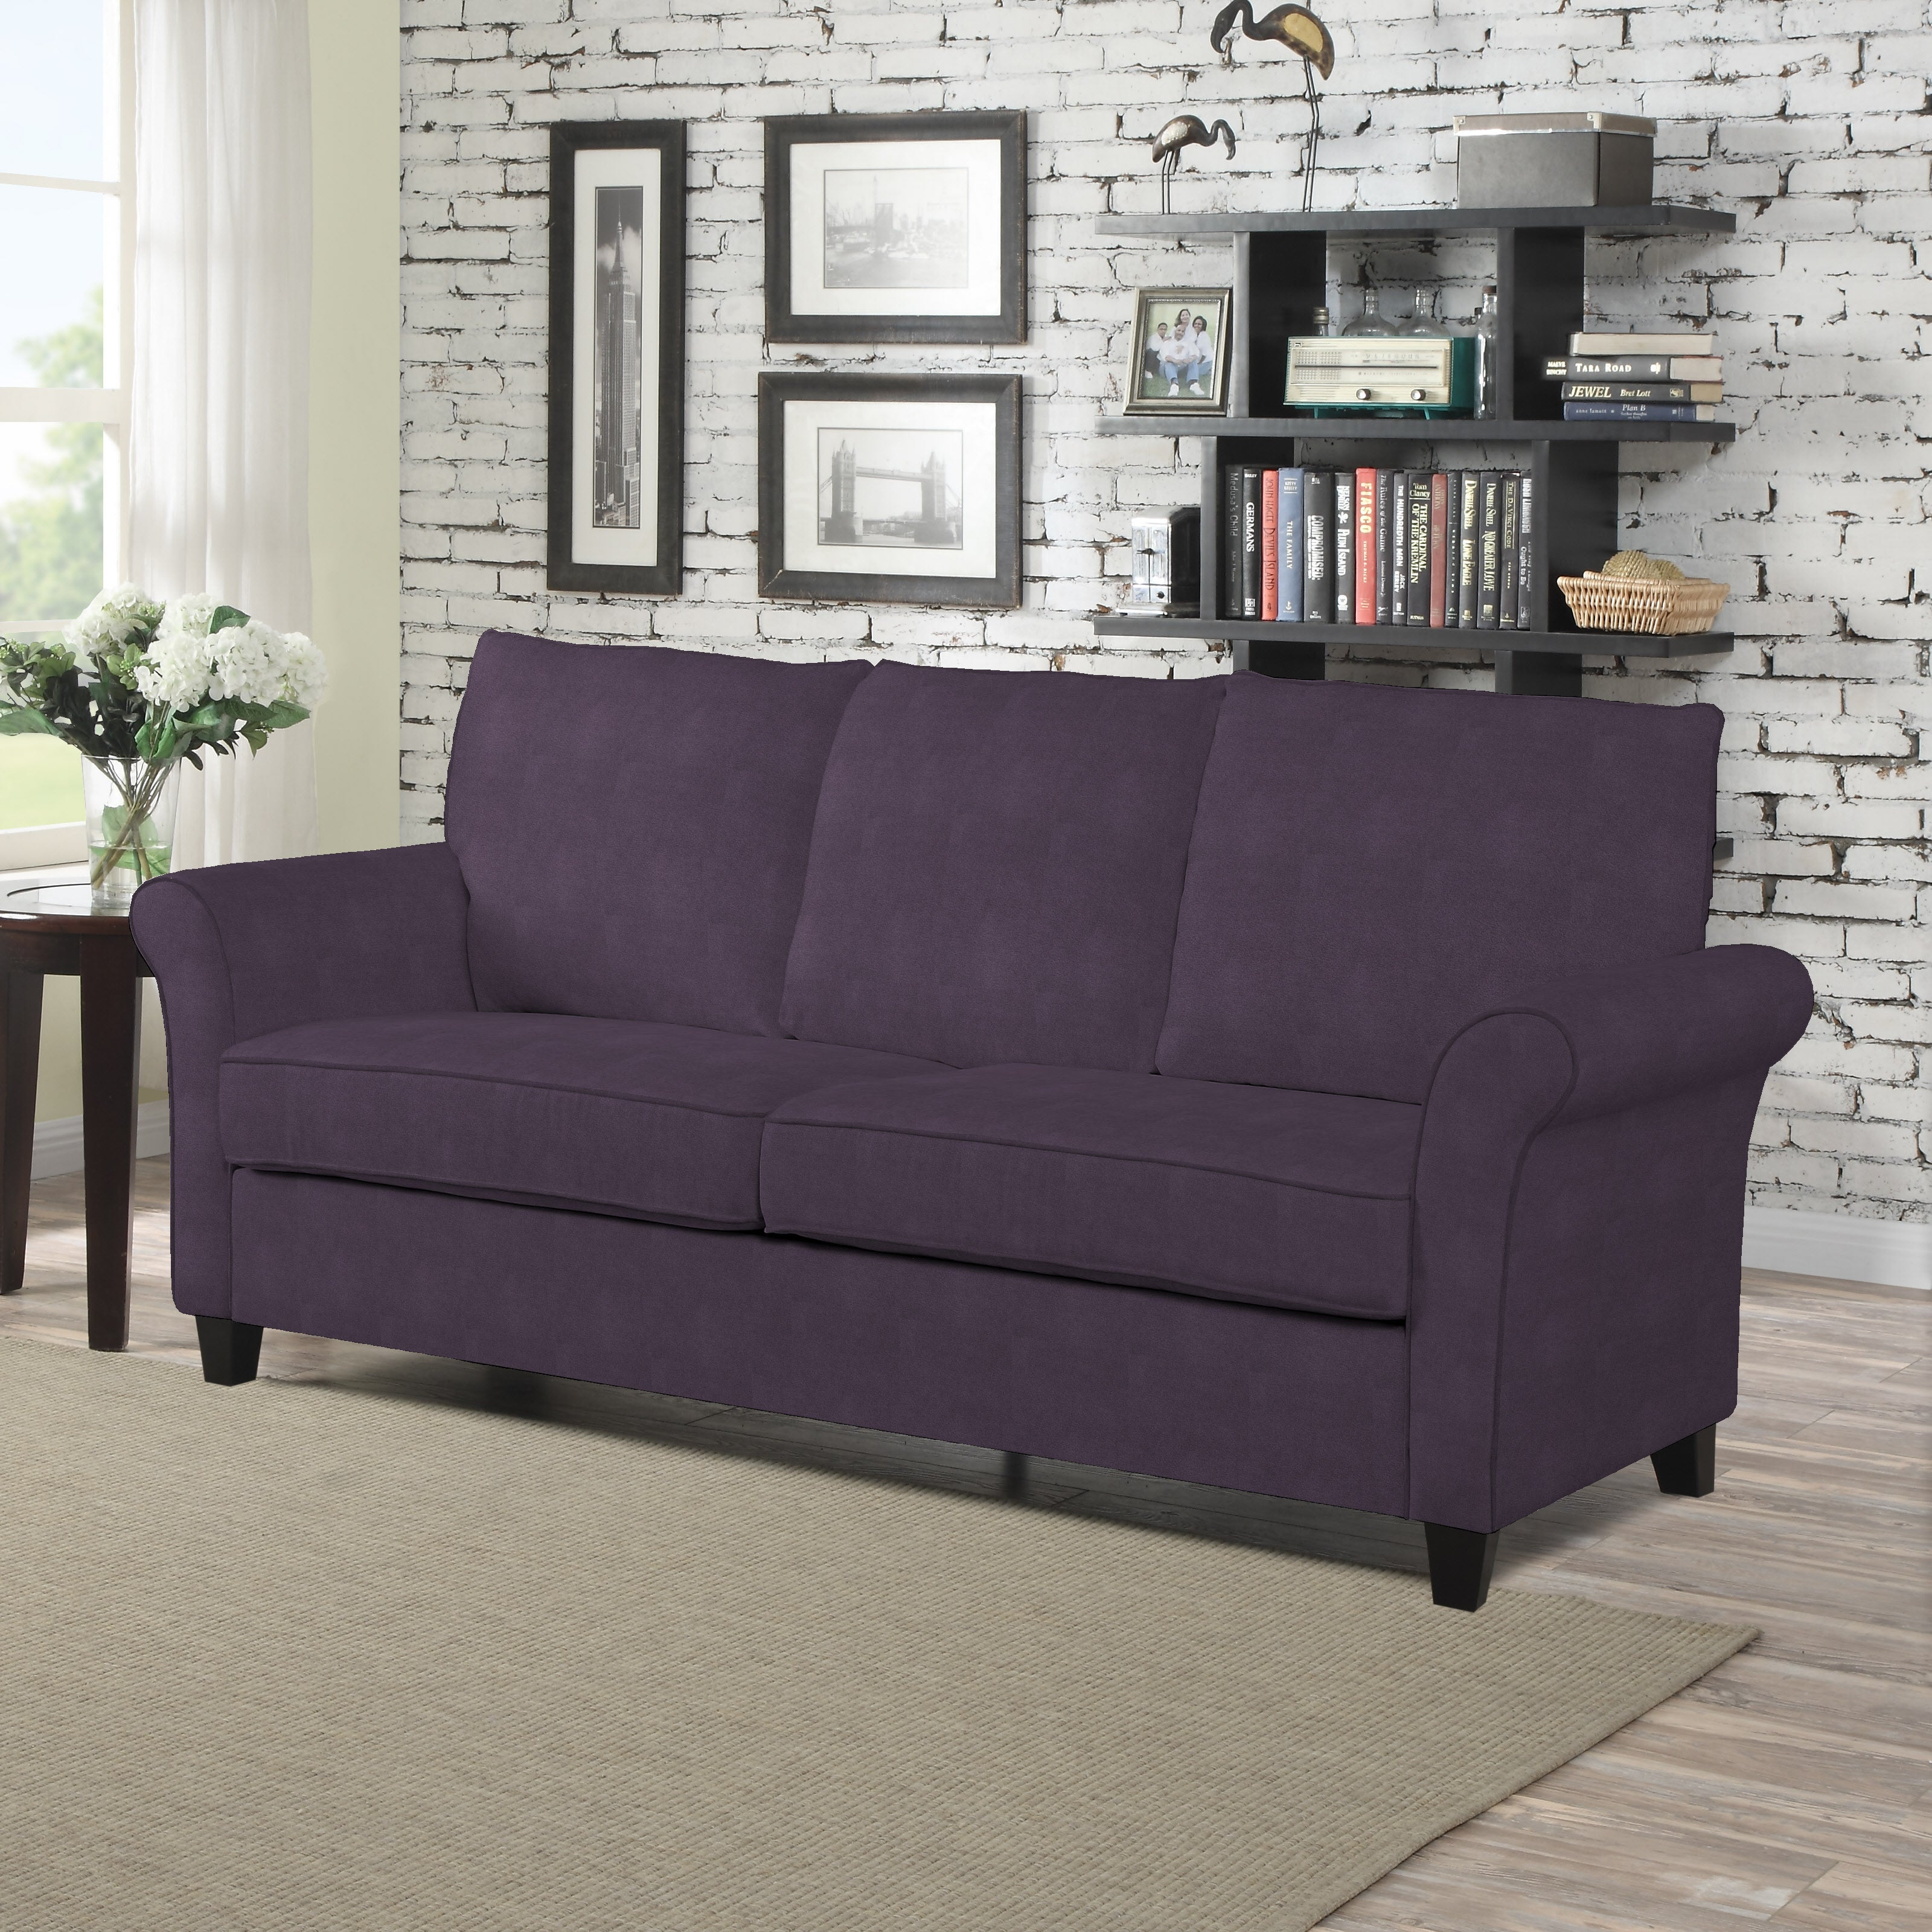 country from appeal plum modern gorgeous loveseat pin the this a boasting windermere living